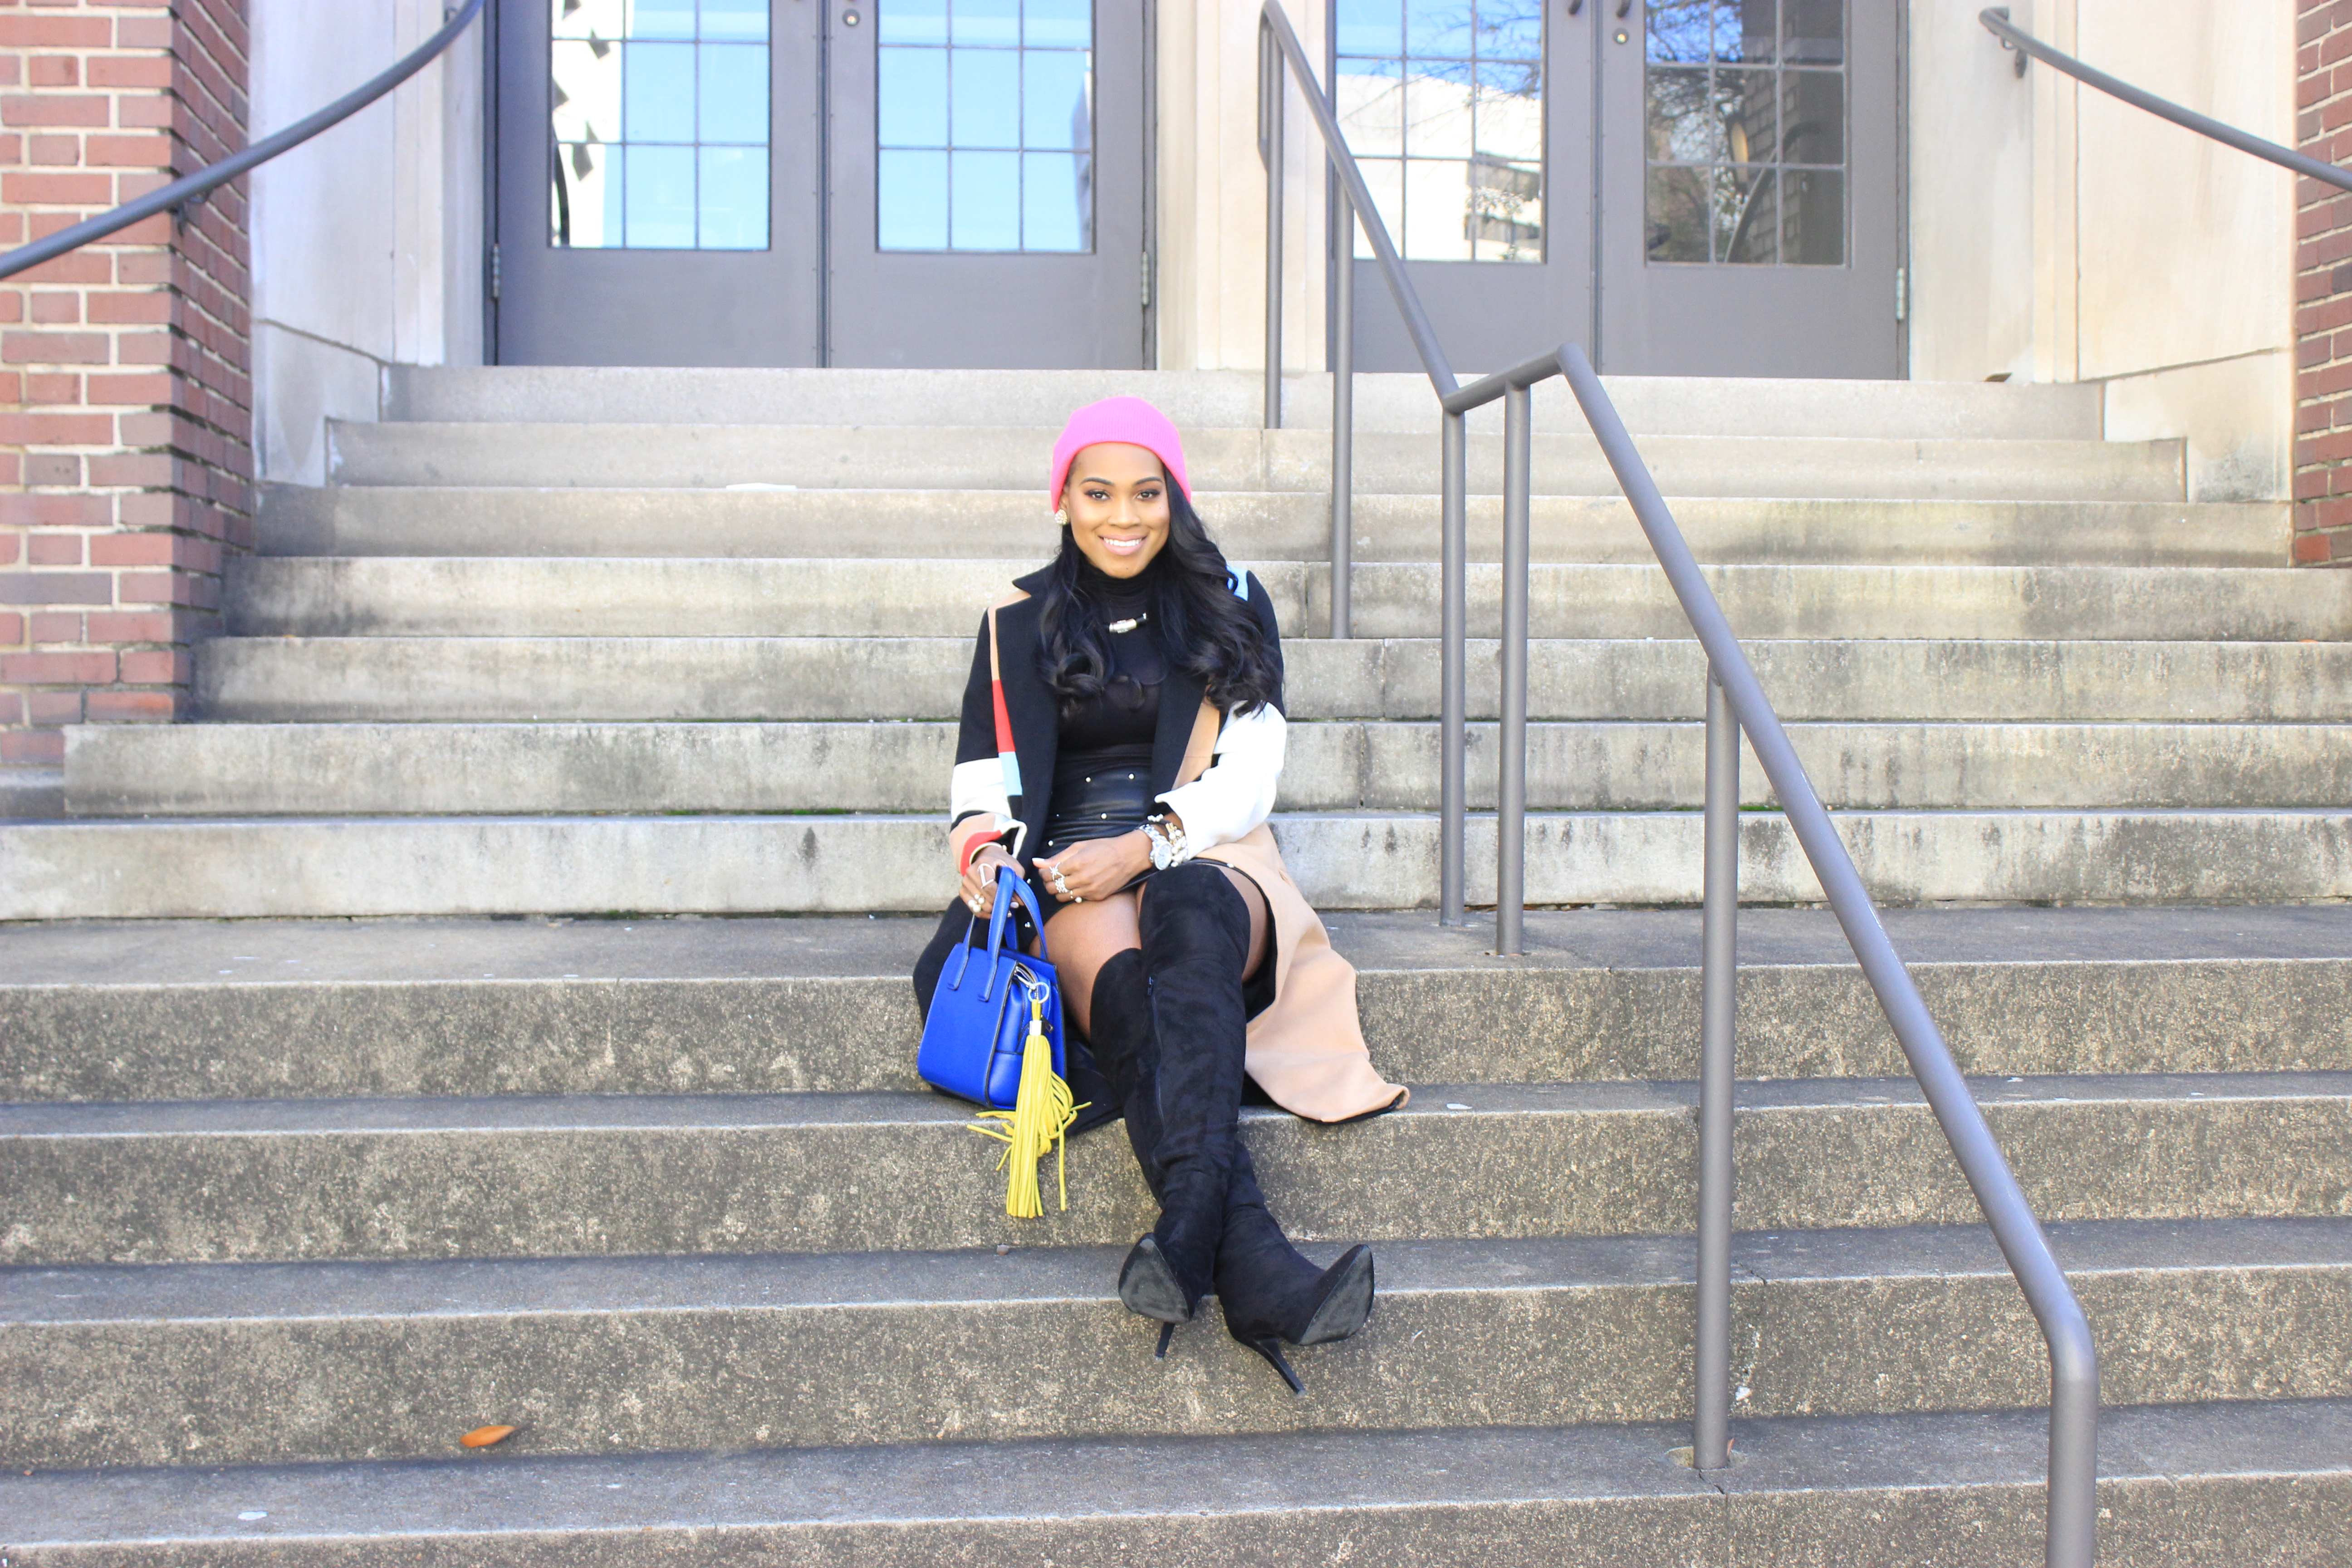 Style-Files-SheIn-Multicolor-Lapel-Color-Block-Coat-Forever21-Faux-Leather-studded-mini-skirt-black-sheer-turtleneck-Truffle-Collection-Over- The-Knee-Lace-Up-Back-High-Heeled-Boots-Hot-Pink-Beanie-Winter-Coat-Style-Guide-Oohlalablog-17